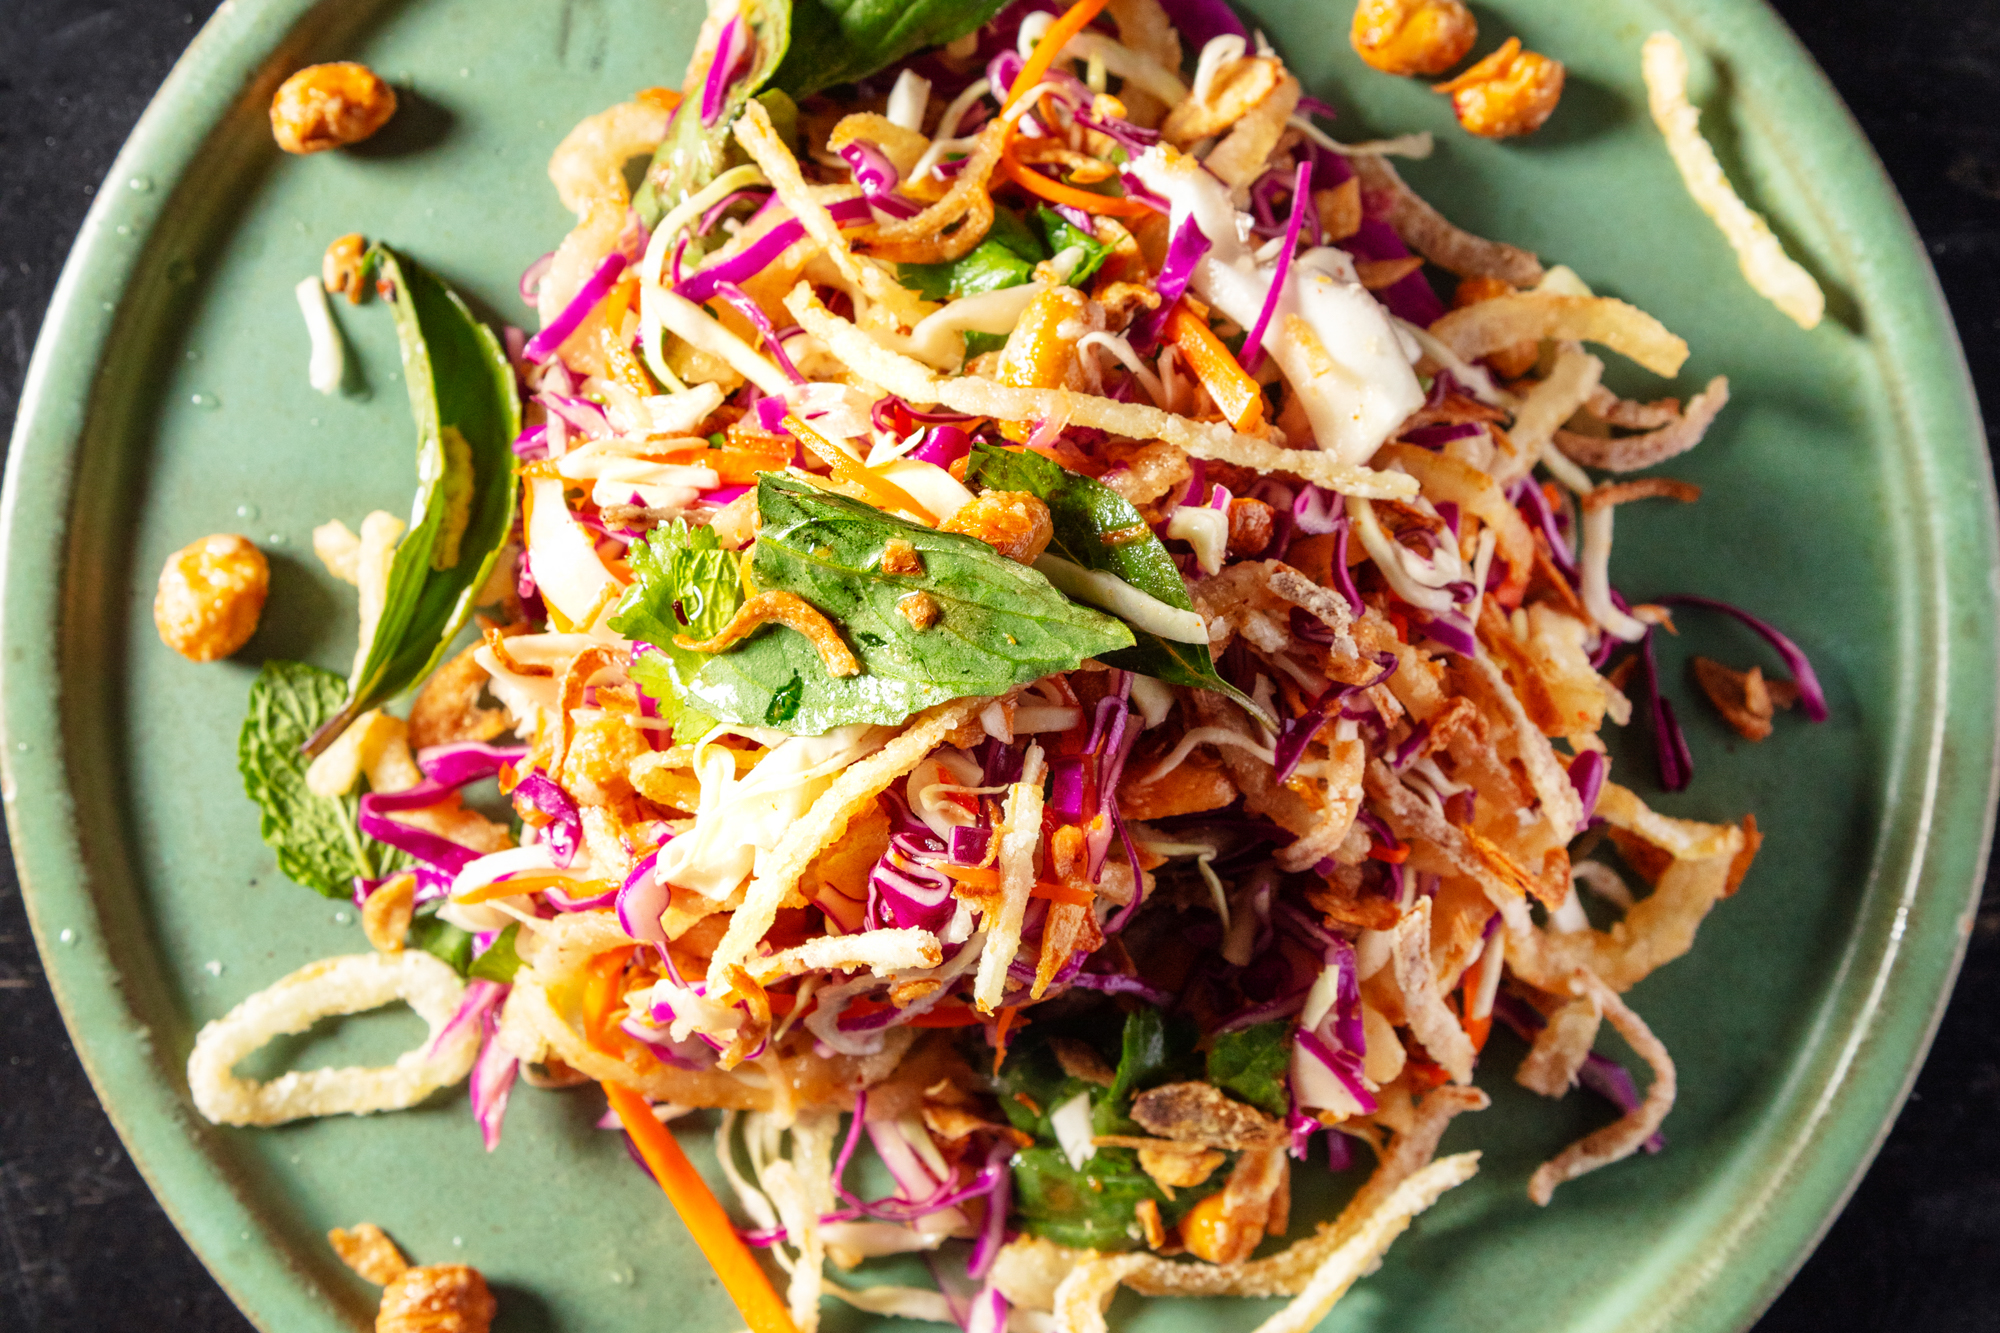 Crunchy Cabbage Salad with Peanuts and Fish Sauce Recipe